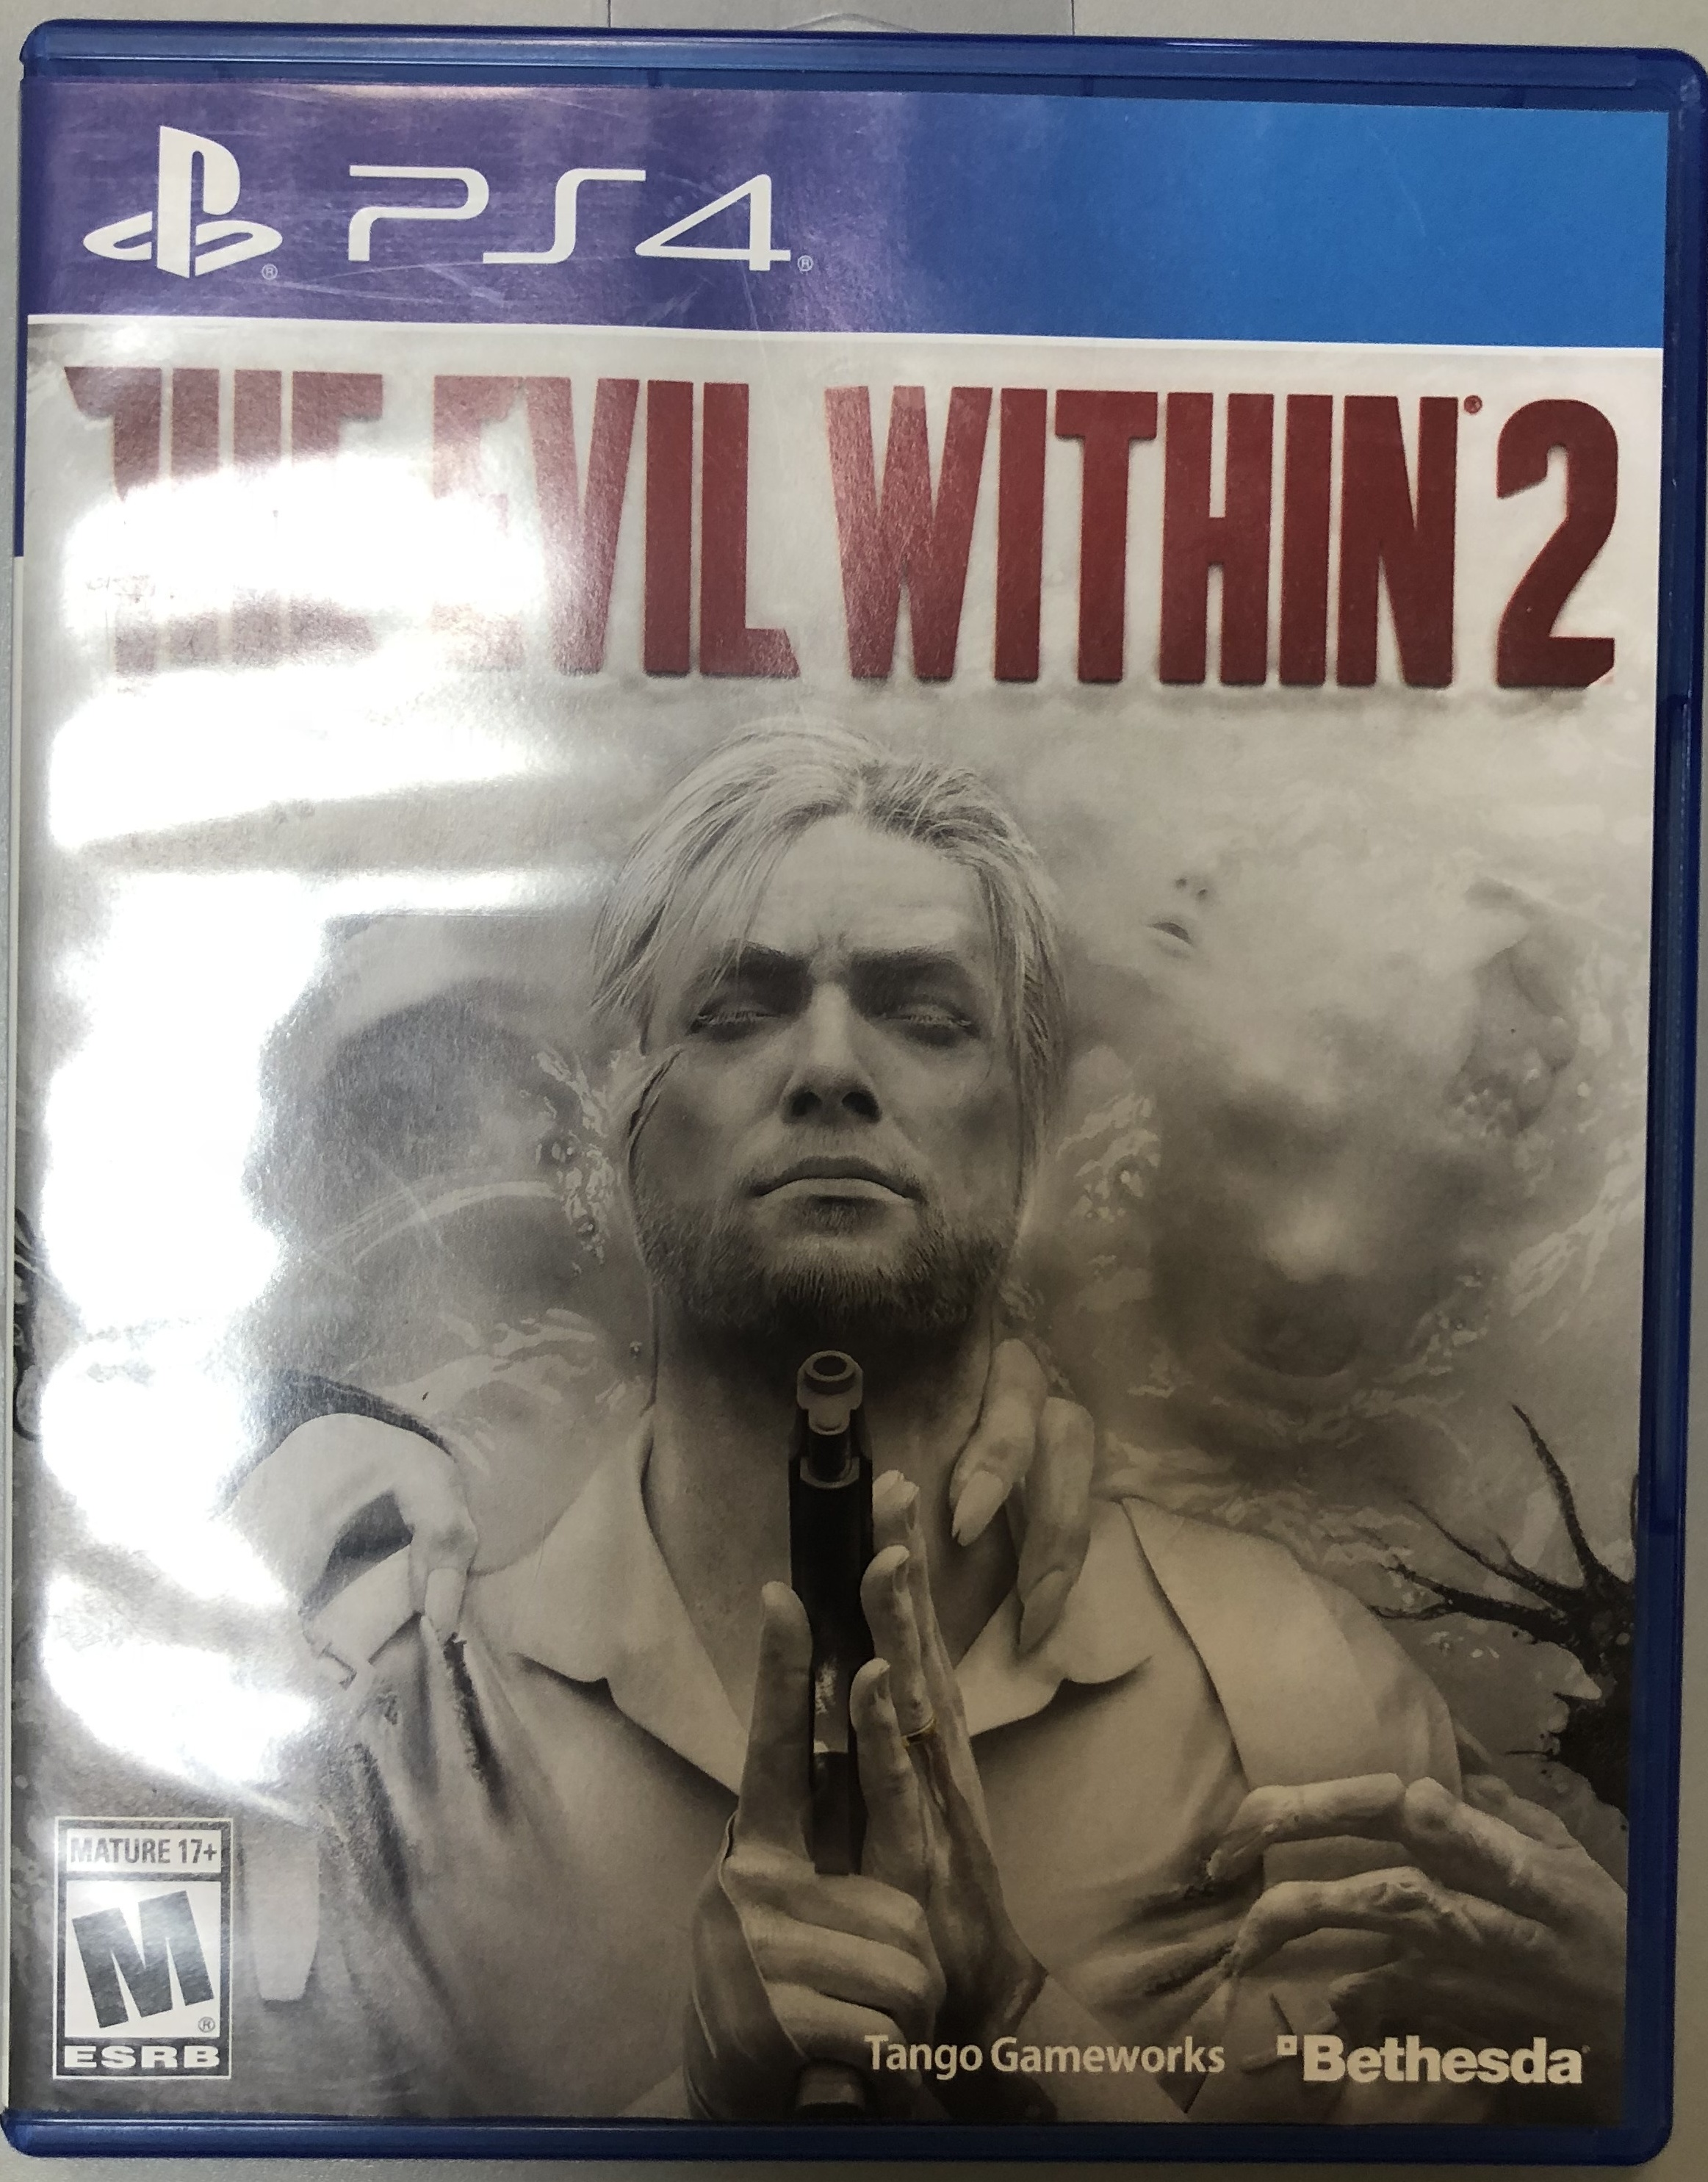 The Evil Winthin 2